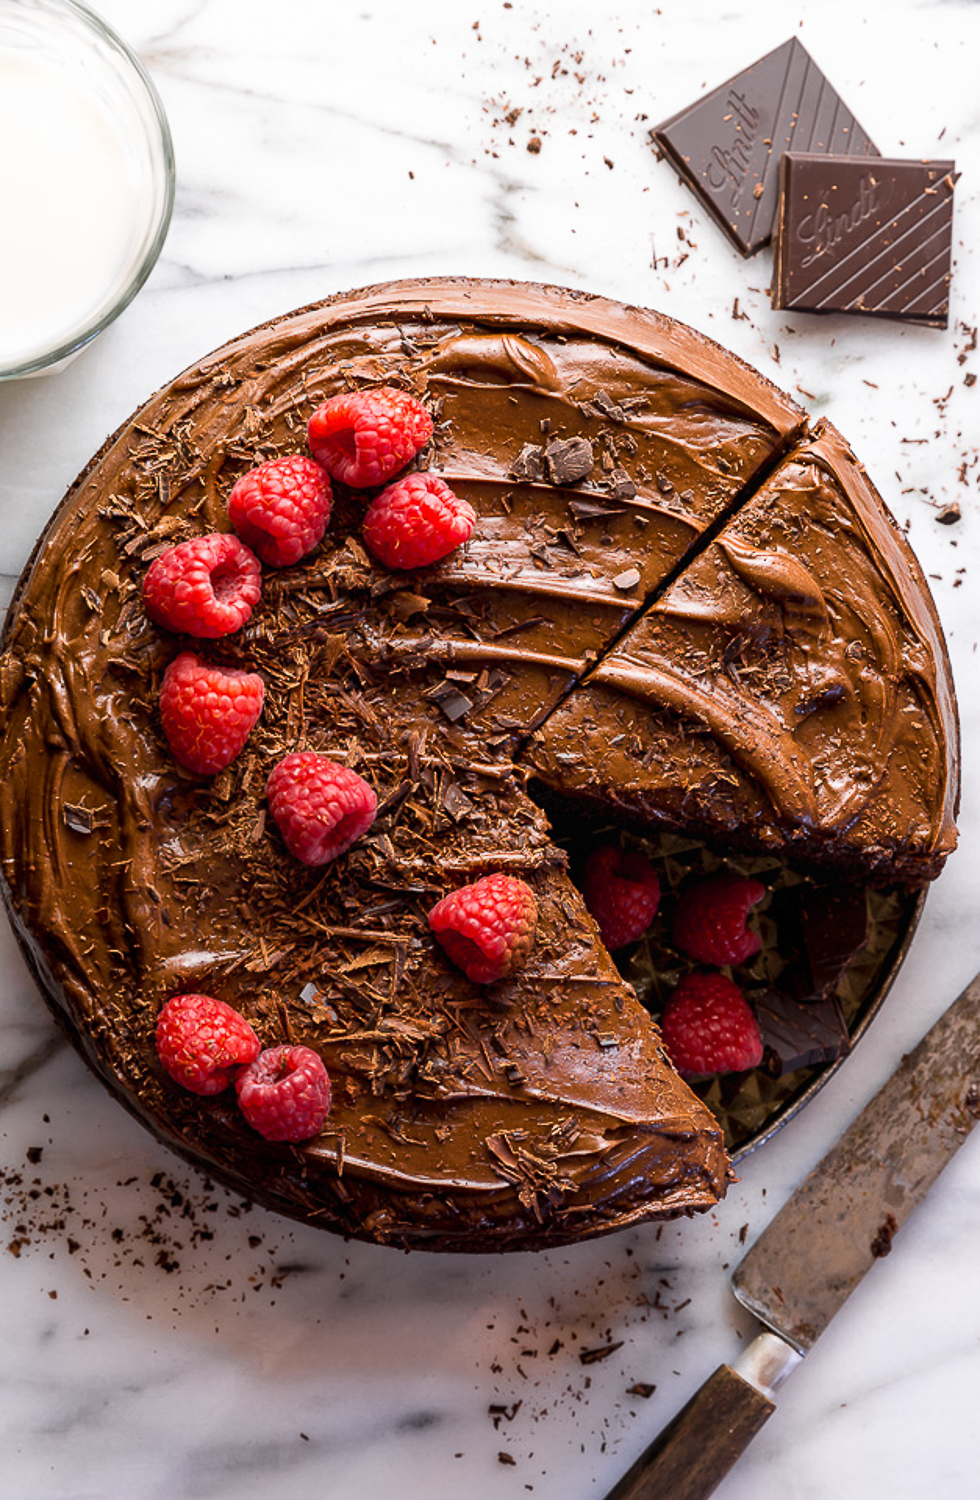 17 Chocolate Cake Recipes for Chocolate Lovers Only